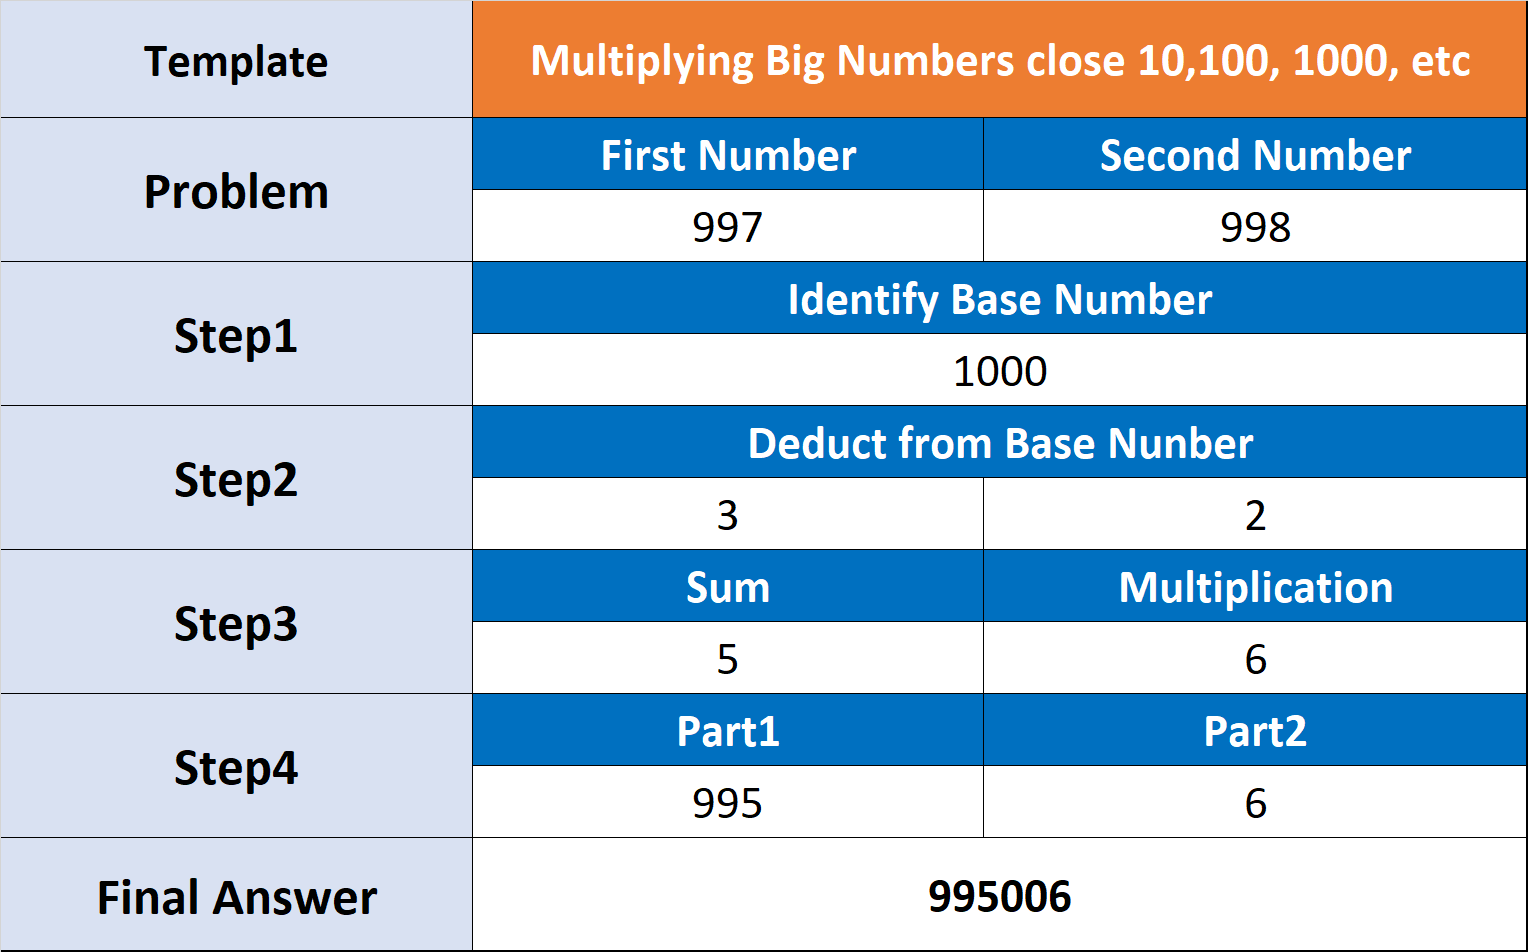 Example How to Multiply Big Numbers close 10,100, 1000